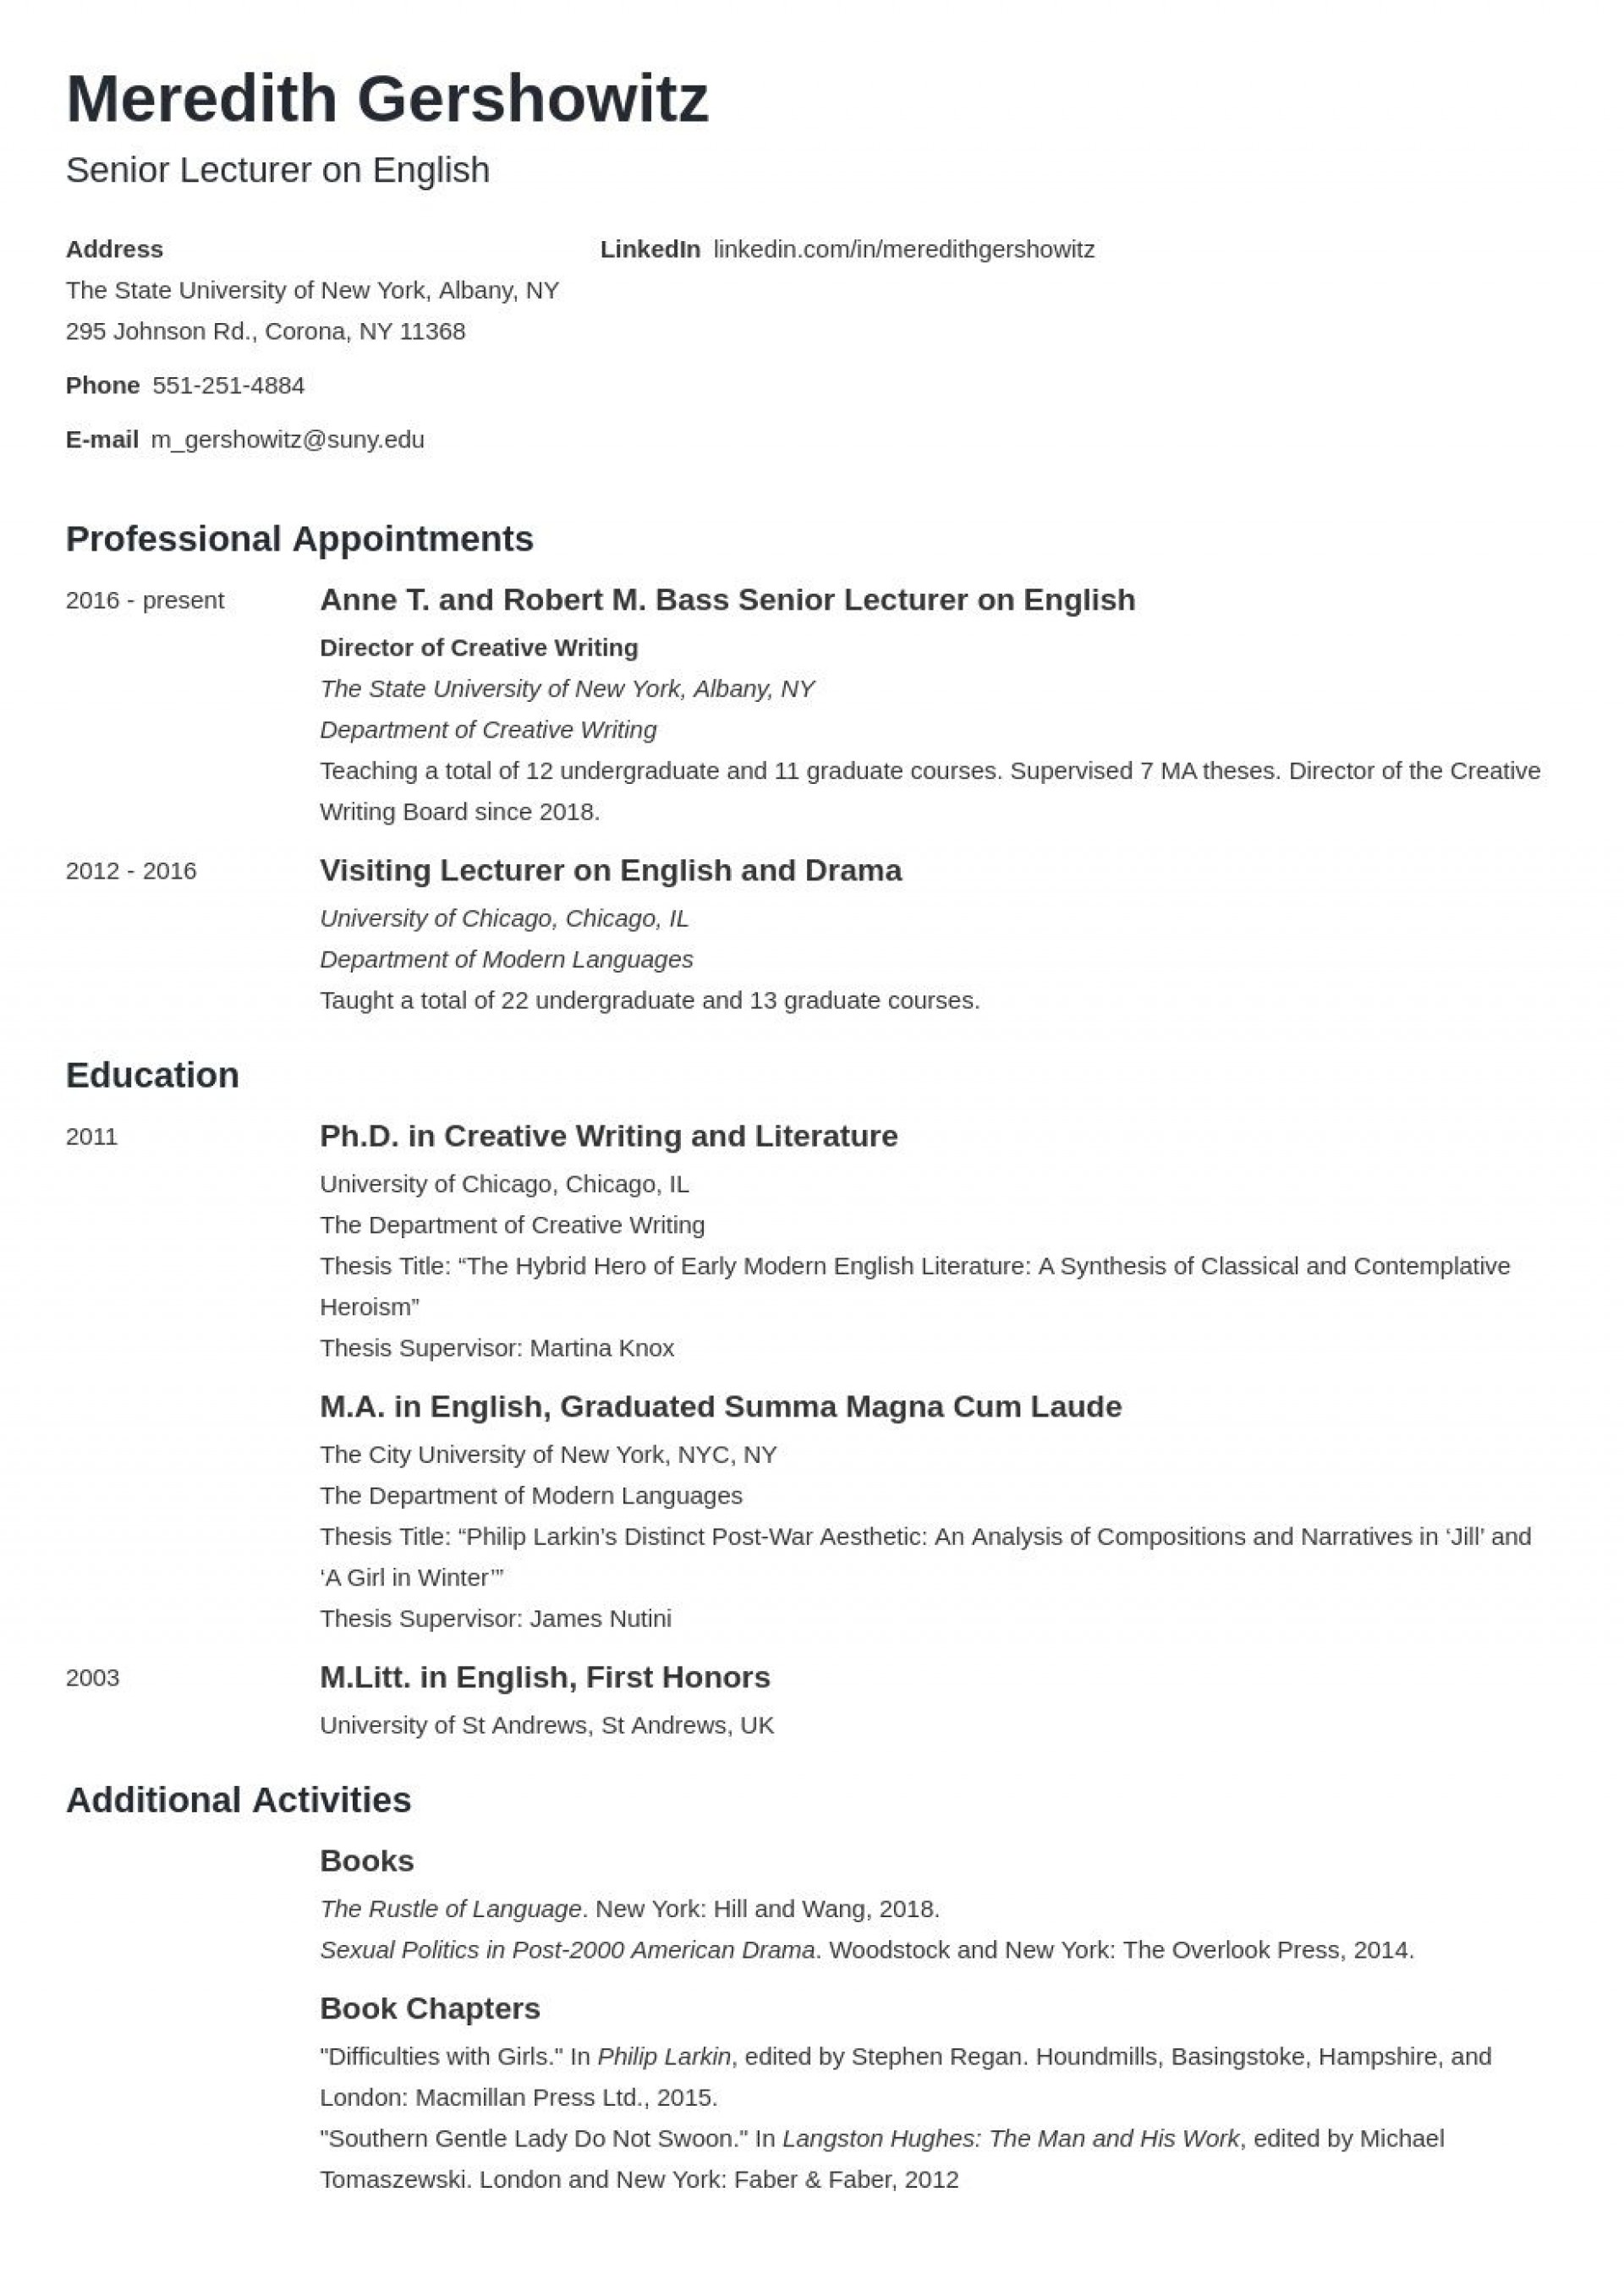 005 Fearsome Curriculum Vitae Template Student Example  Sample College Undergraduate For Research Paper1920